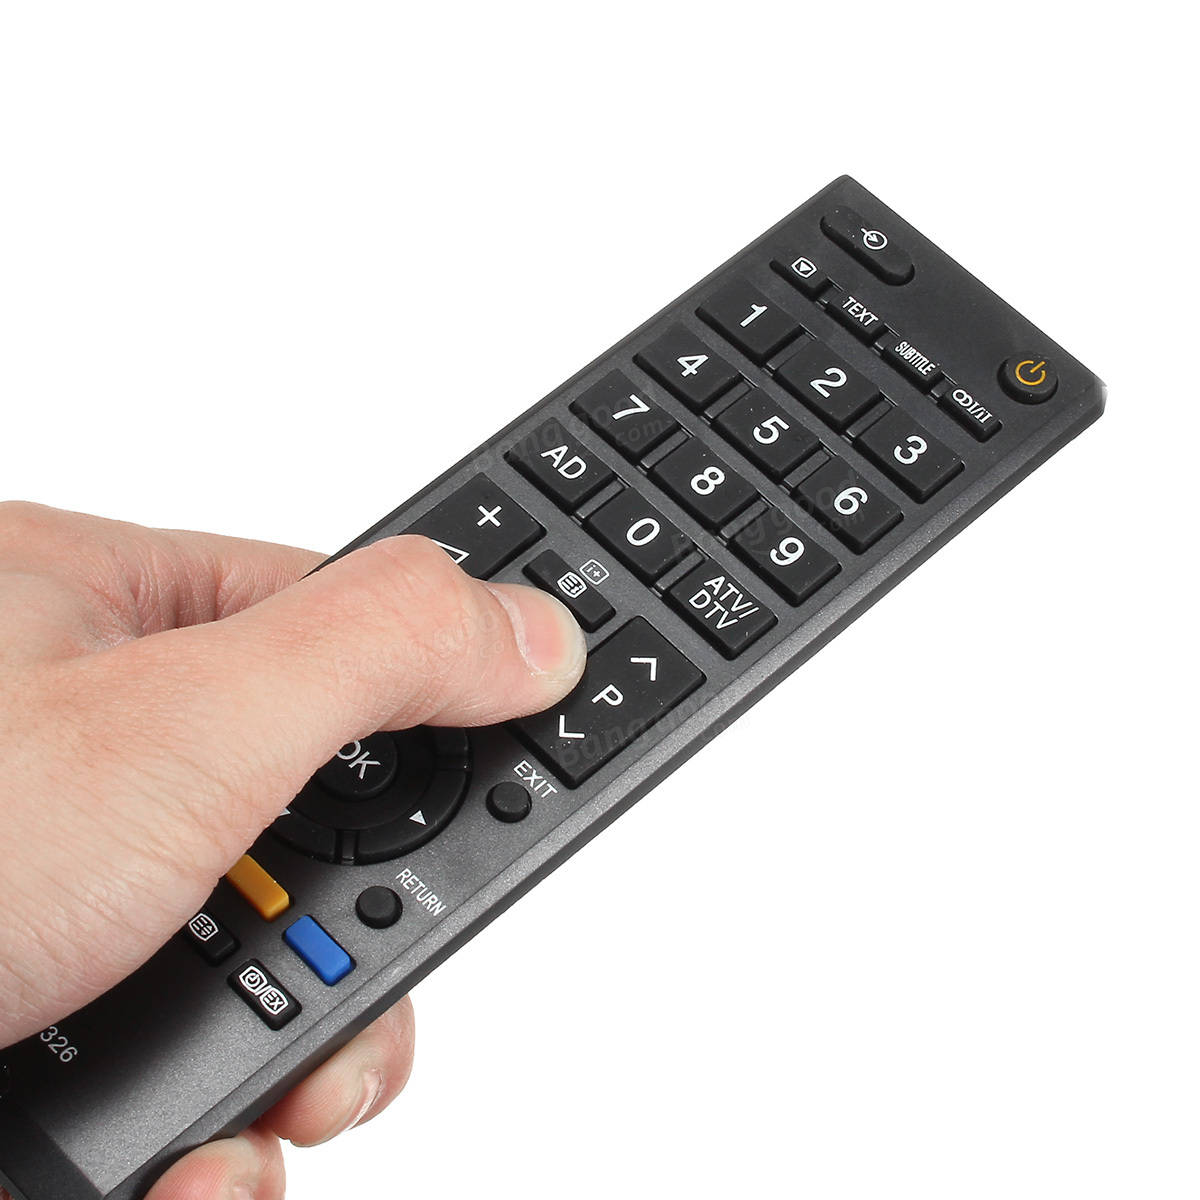 Replacement remote control for toshiba tv ct 90326 ct90326 sale replacement remote control for toshiba tv ct 90326 ct90326 fandeluxe Choice Image